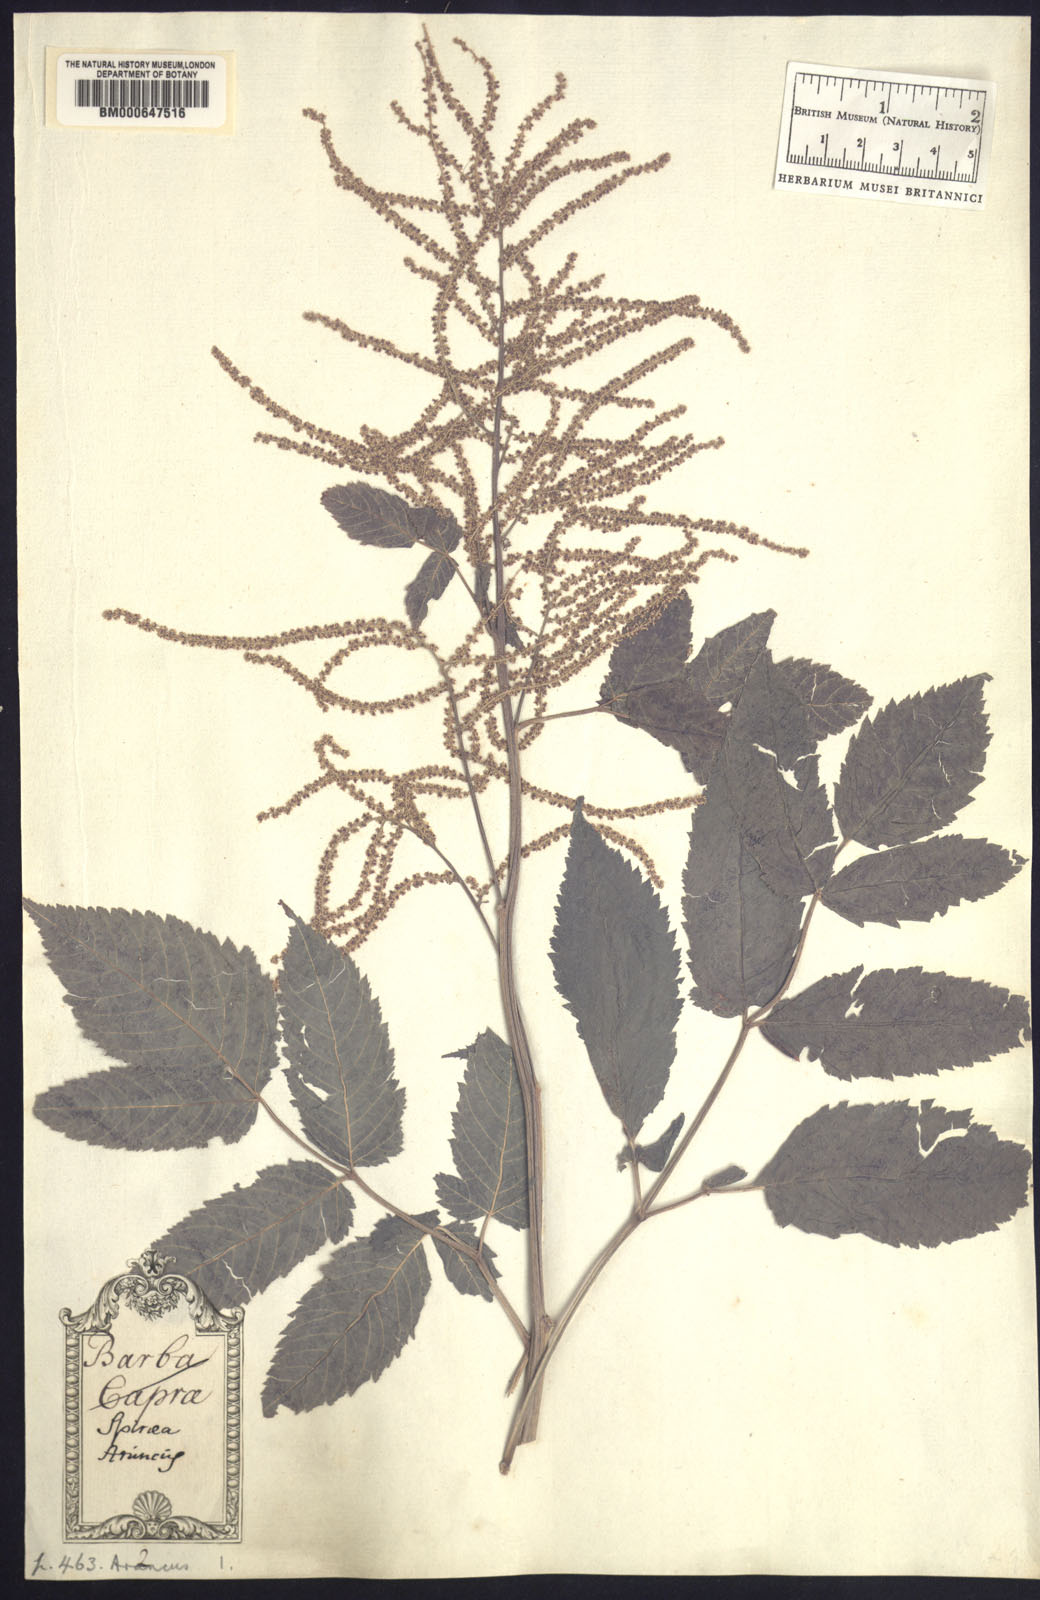 http://www.nhm.ac.uk//resources/research-curation/projects/clifford-herbarium/lgimages/BM000647516.JPG